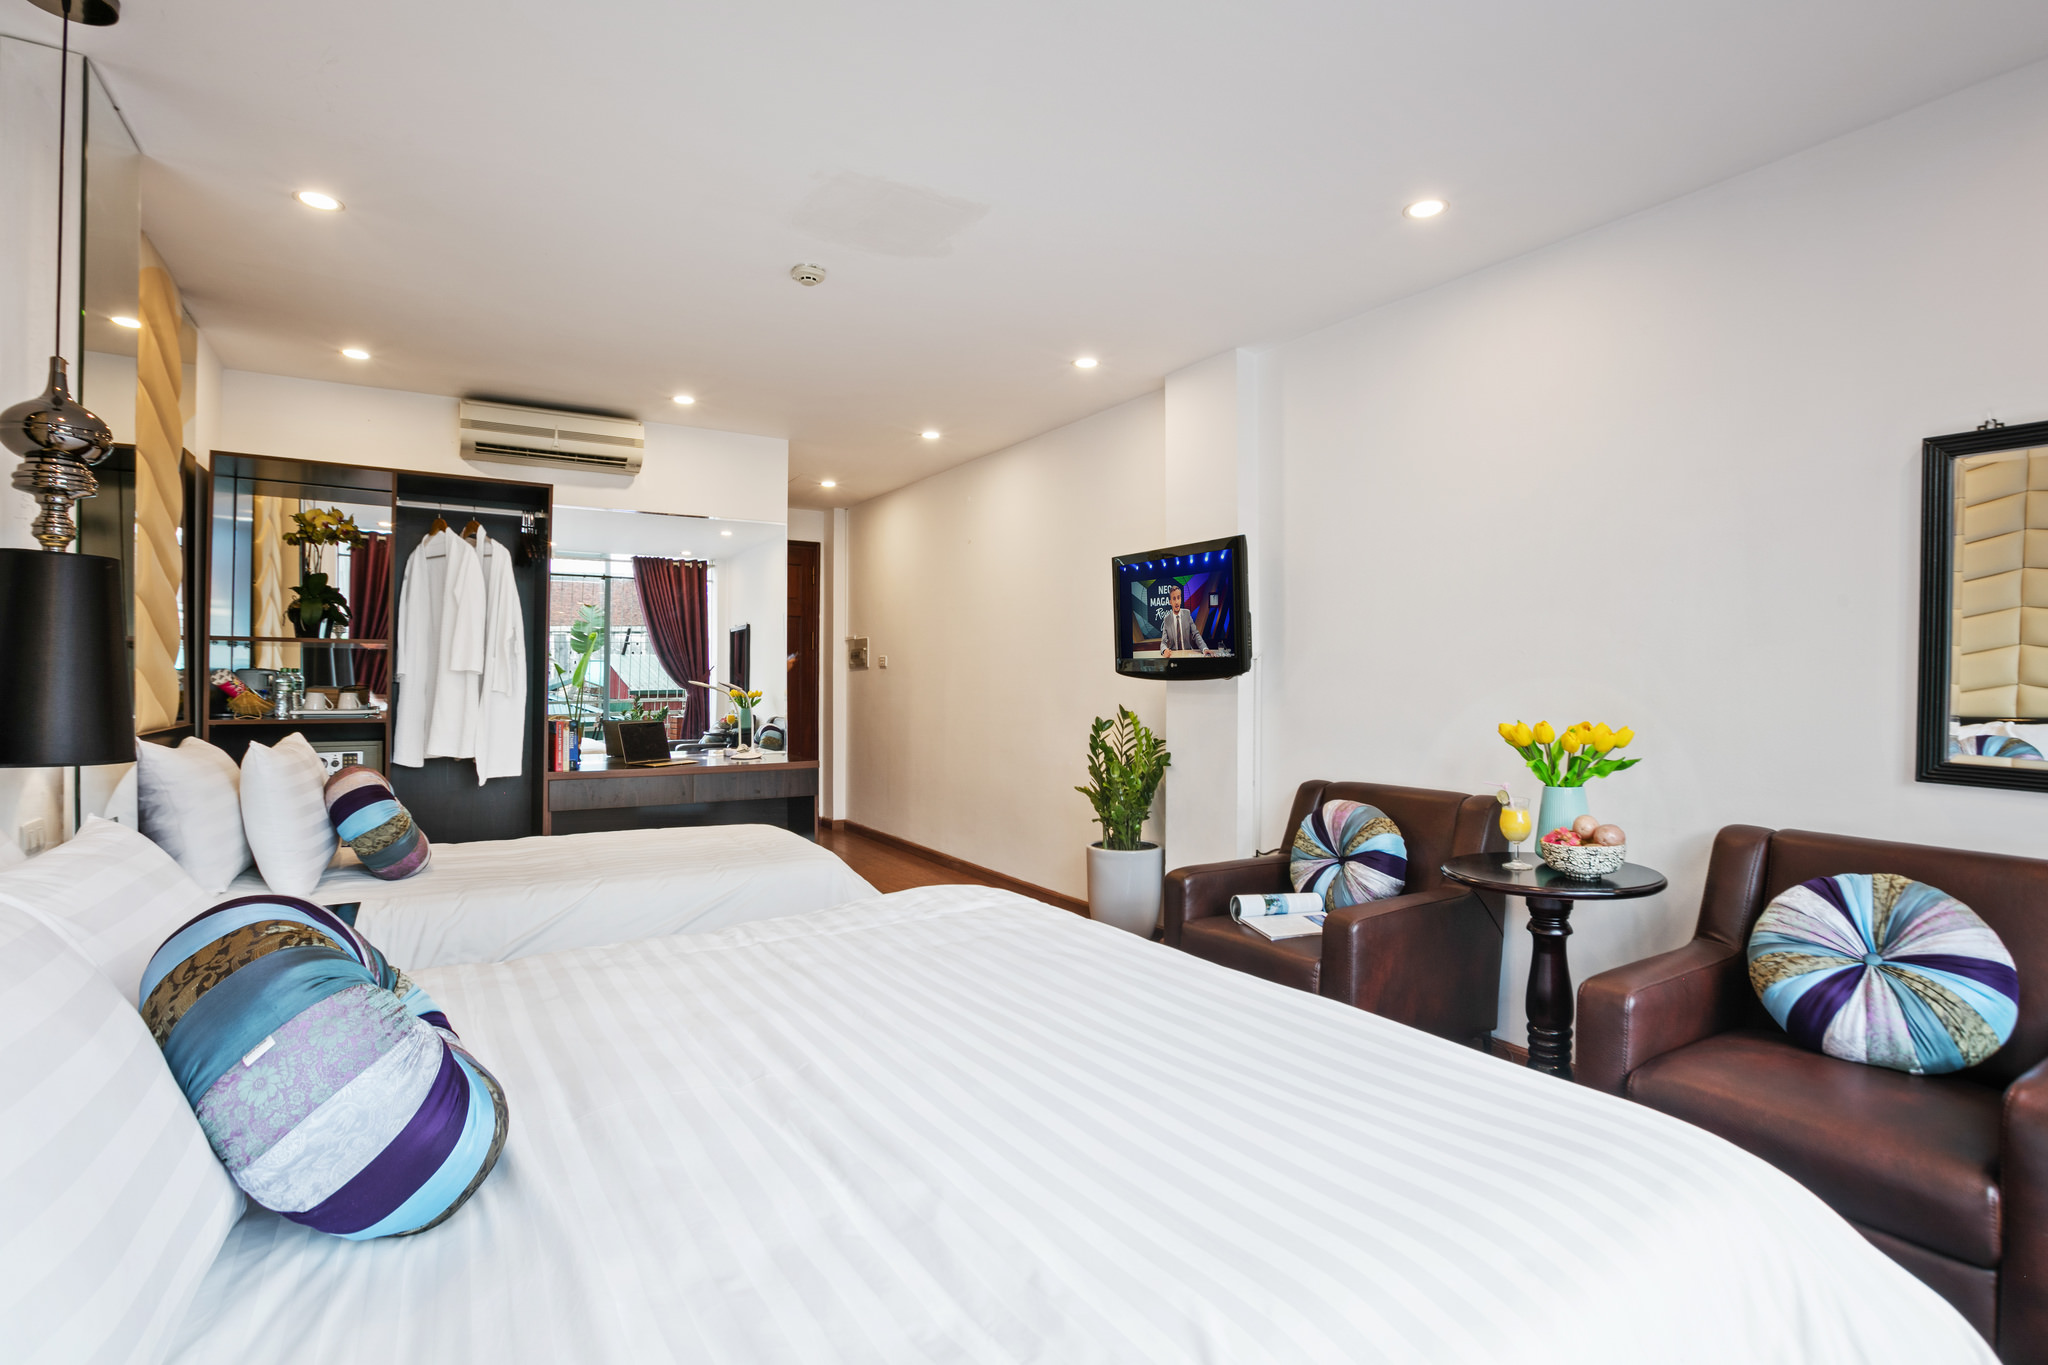 spendid holiday hotel - best hotels in hanoi old quarter